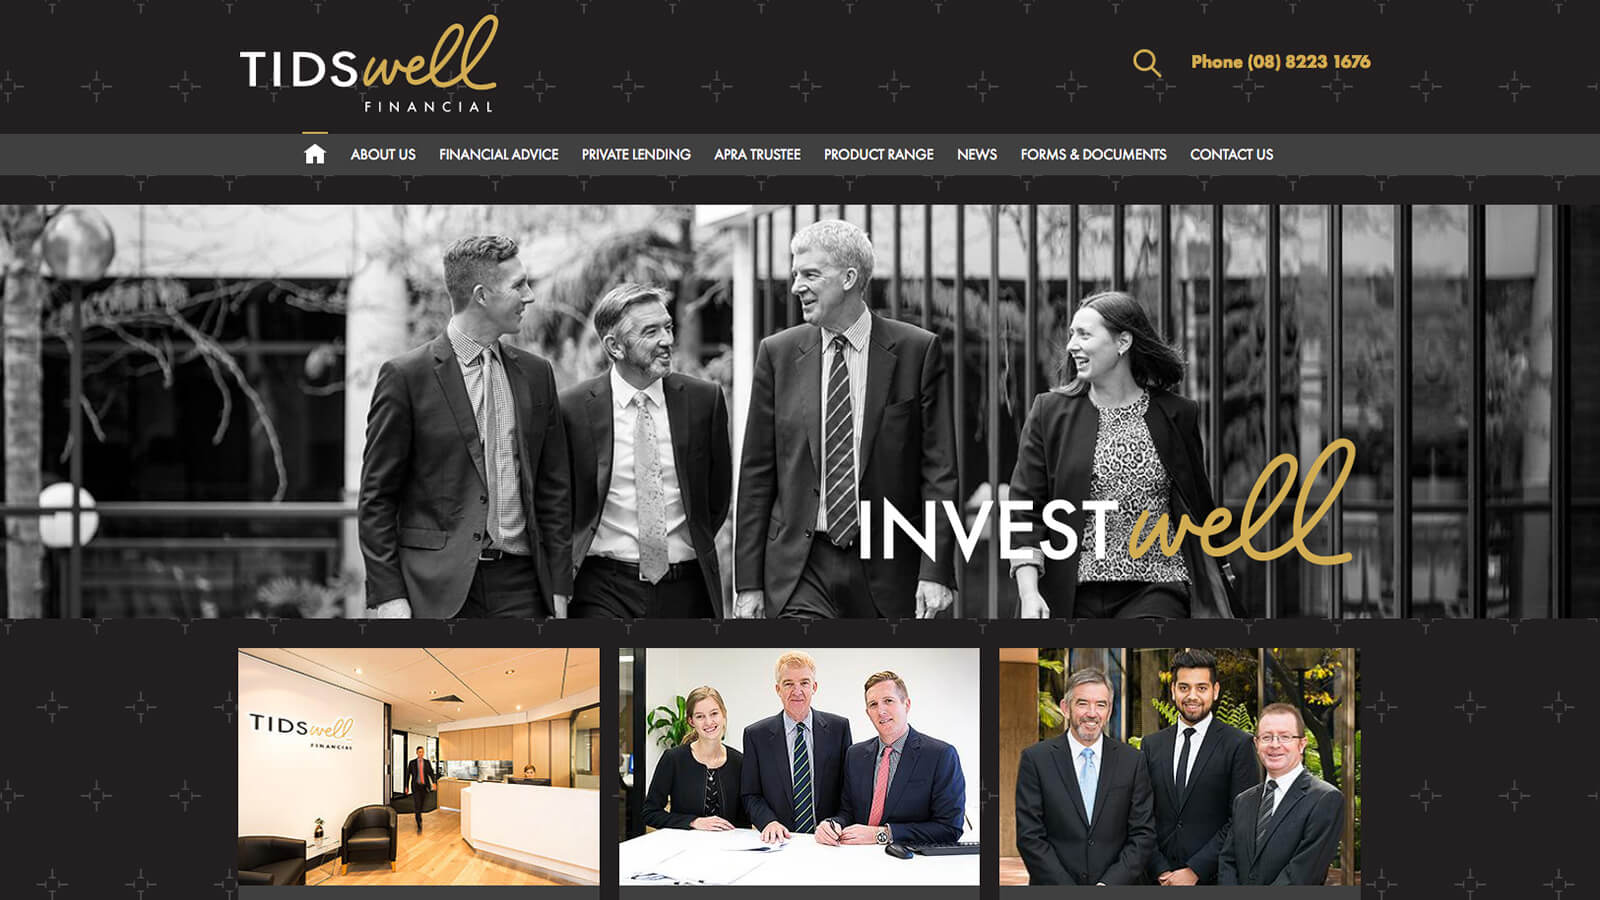 Tidswell Website Development